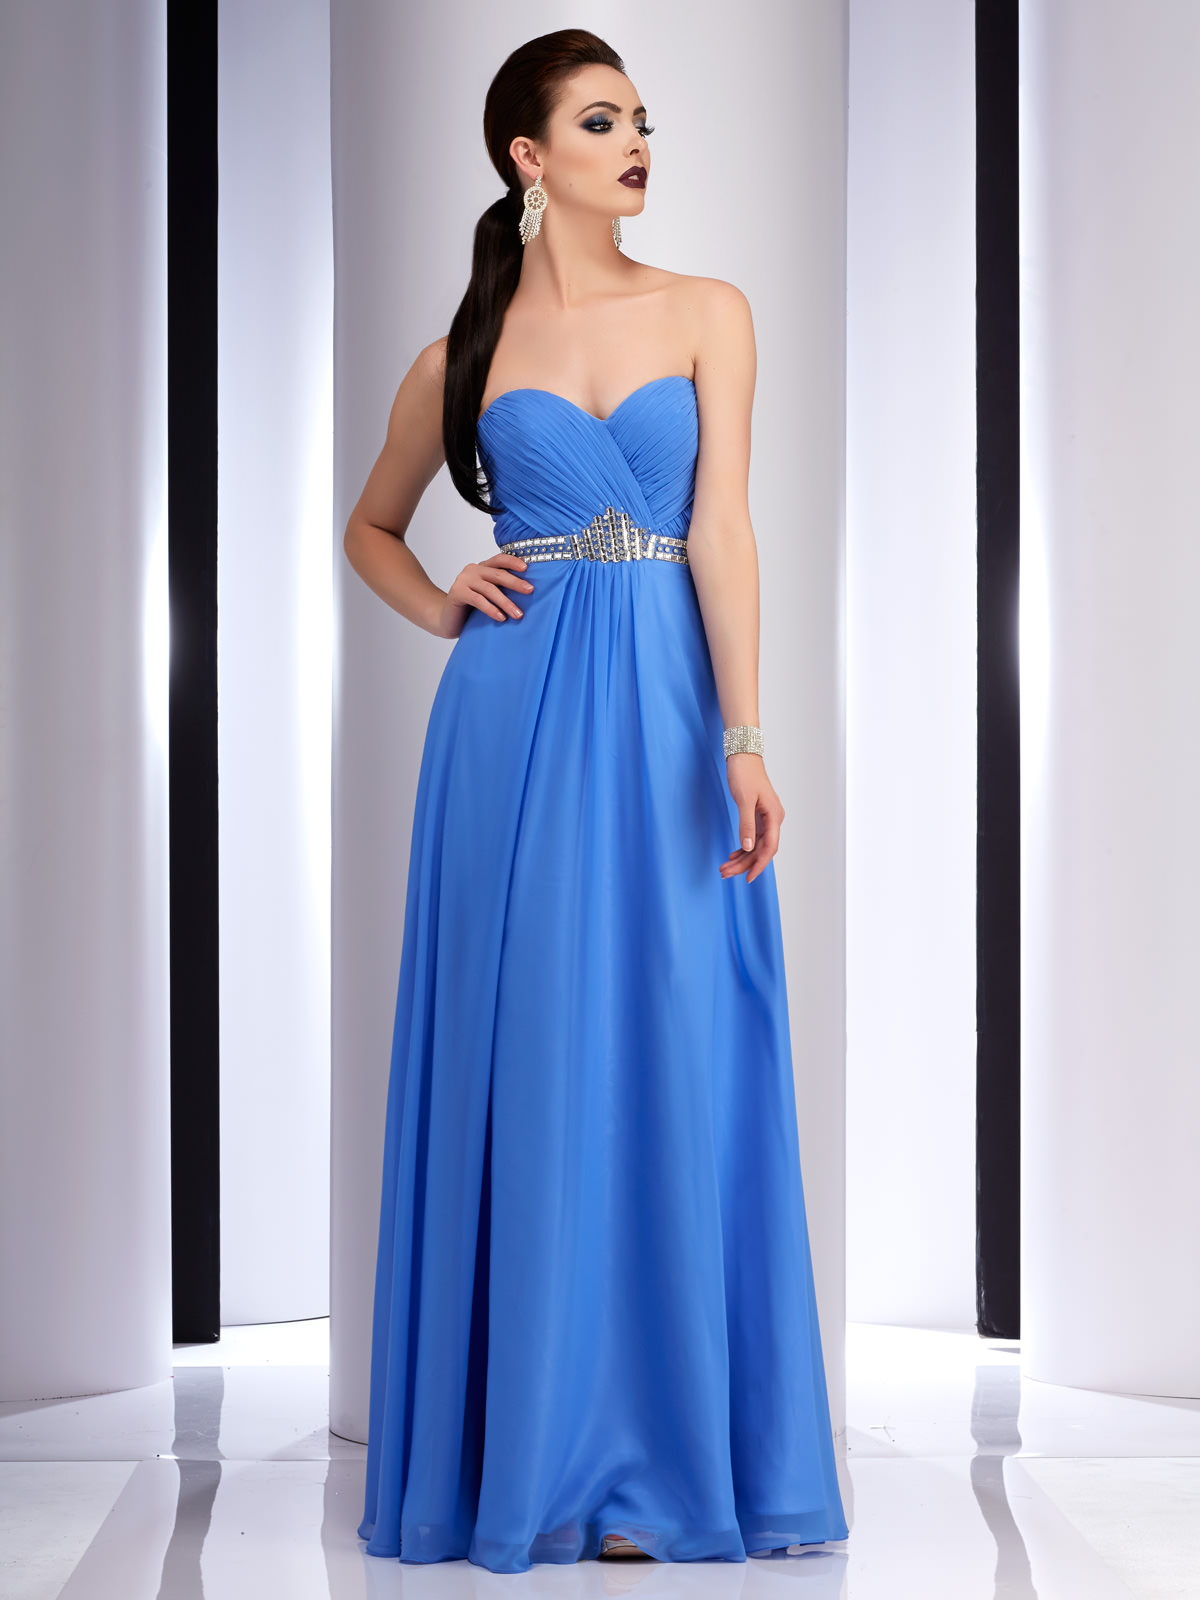 Clarisse 2827 Prom Dress | Promgirl.net